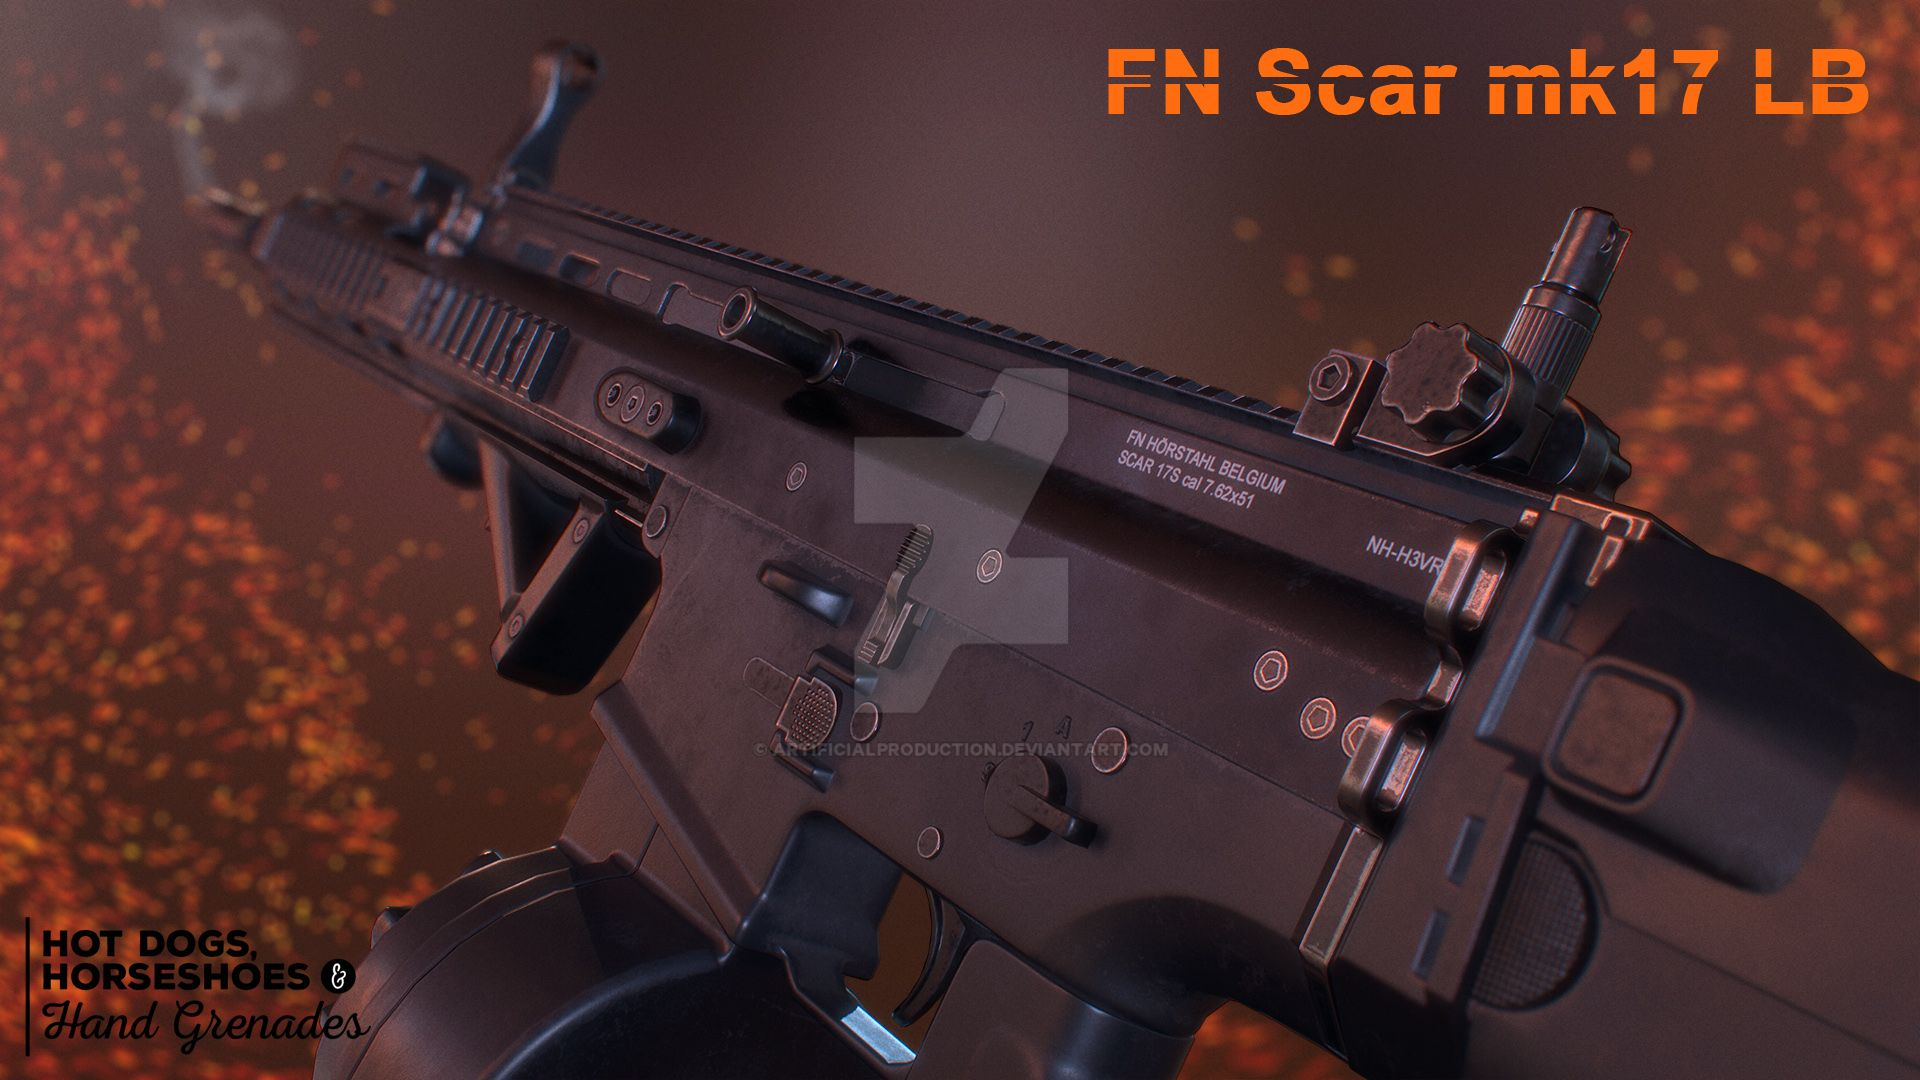 FN Scar mk17 LB by Artificialproduction